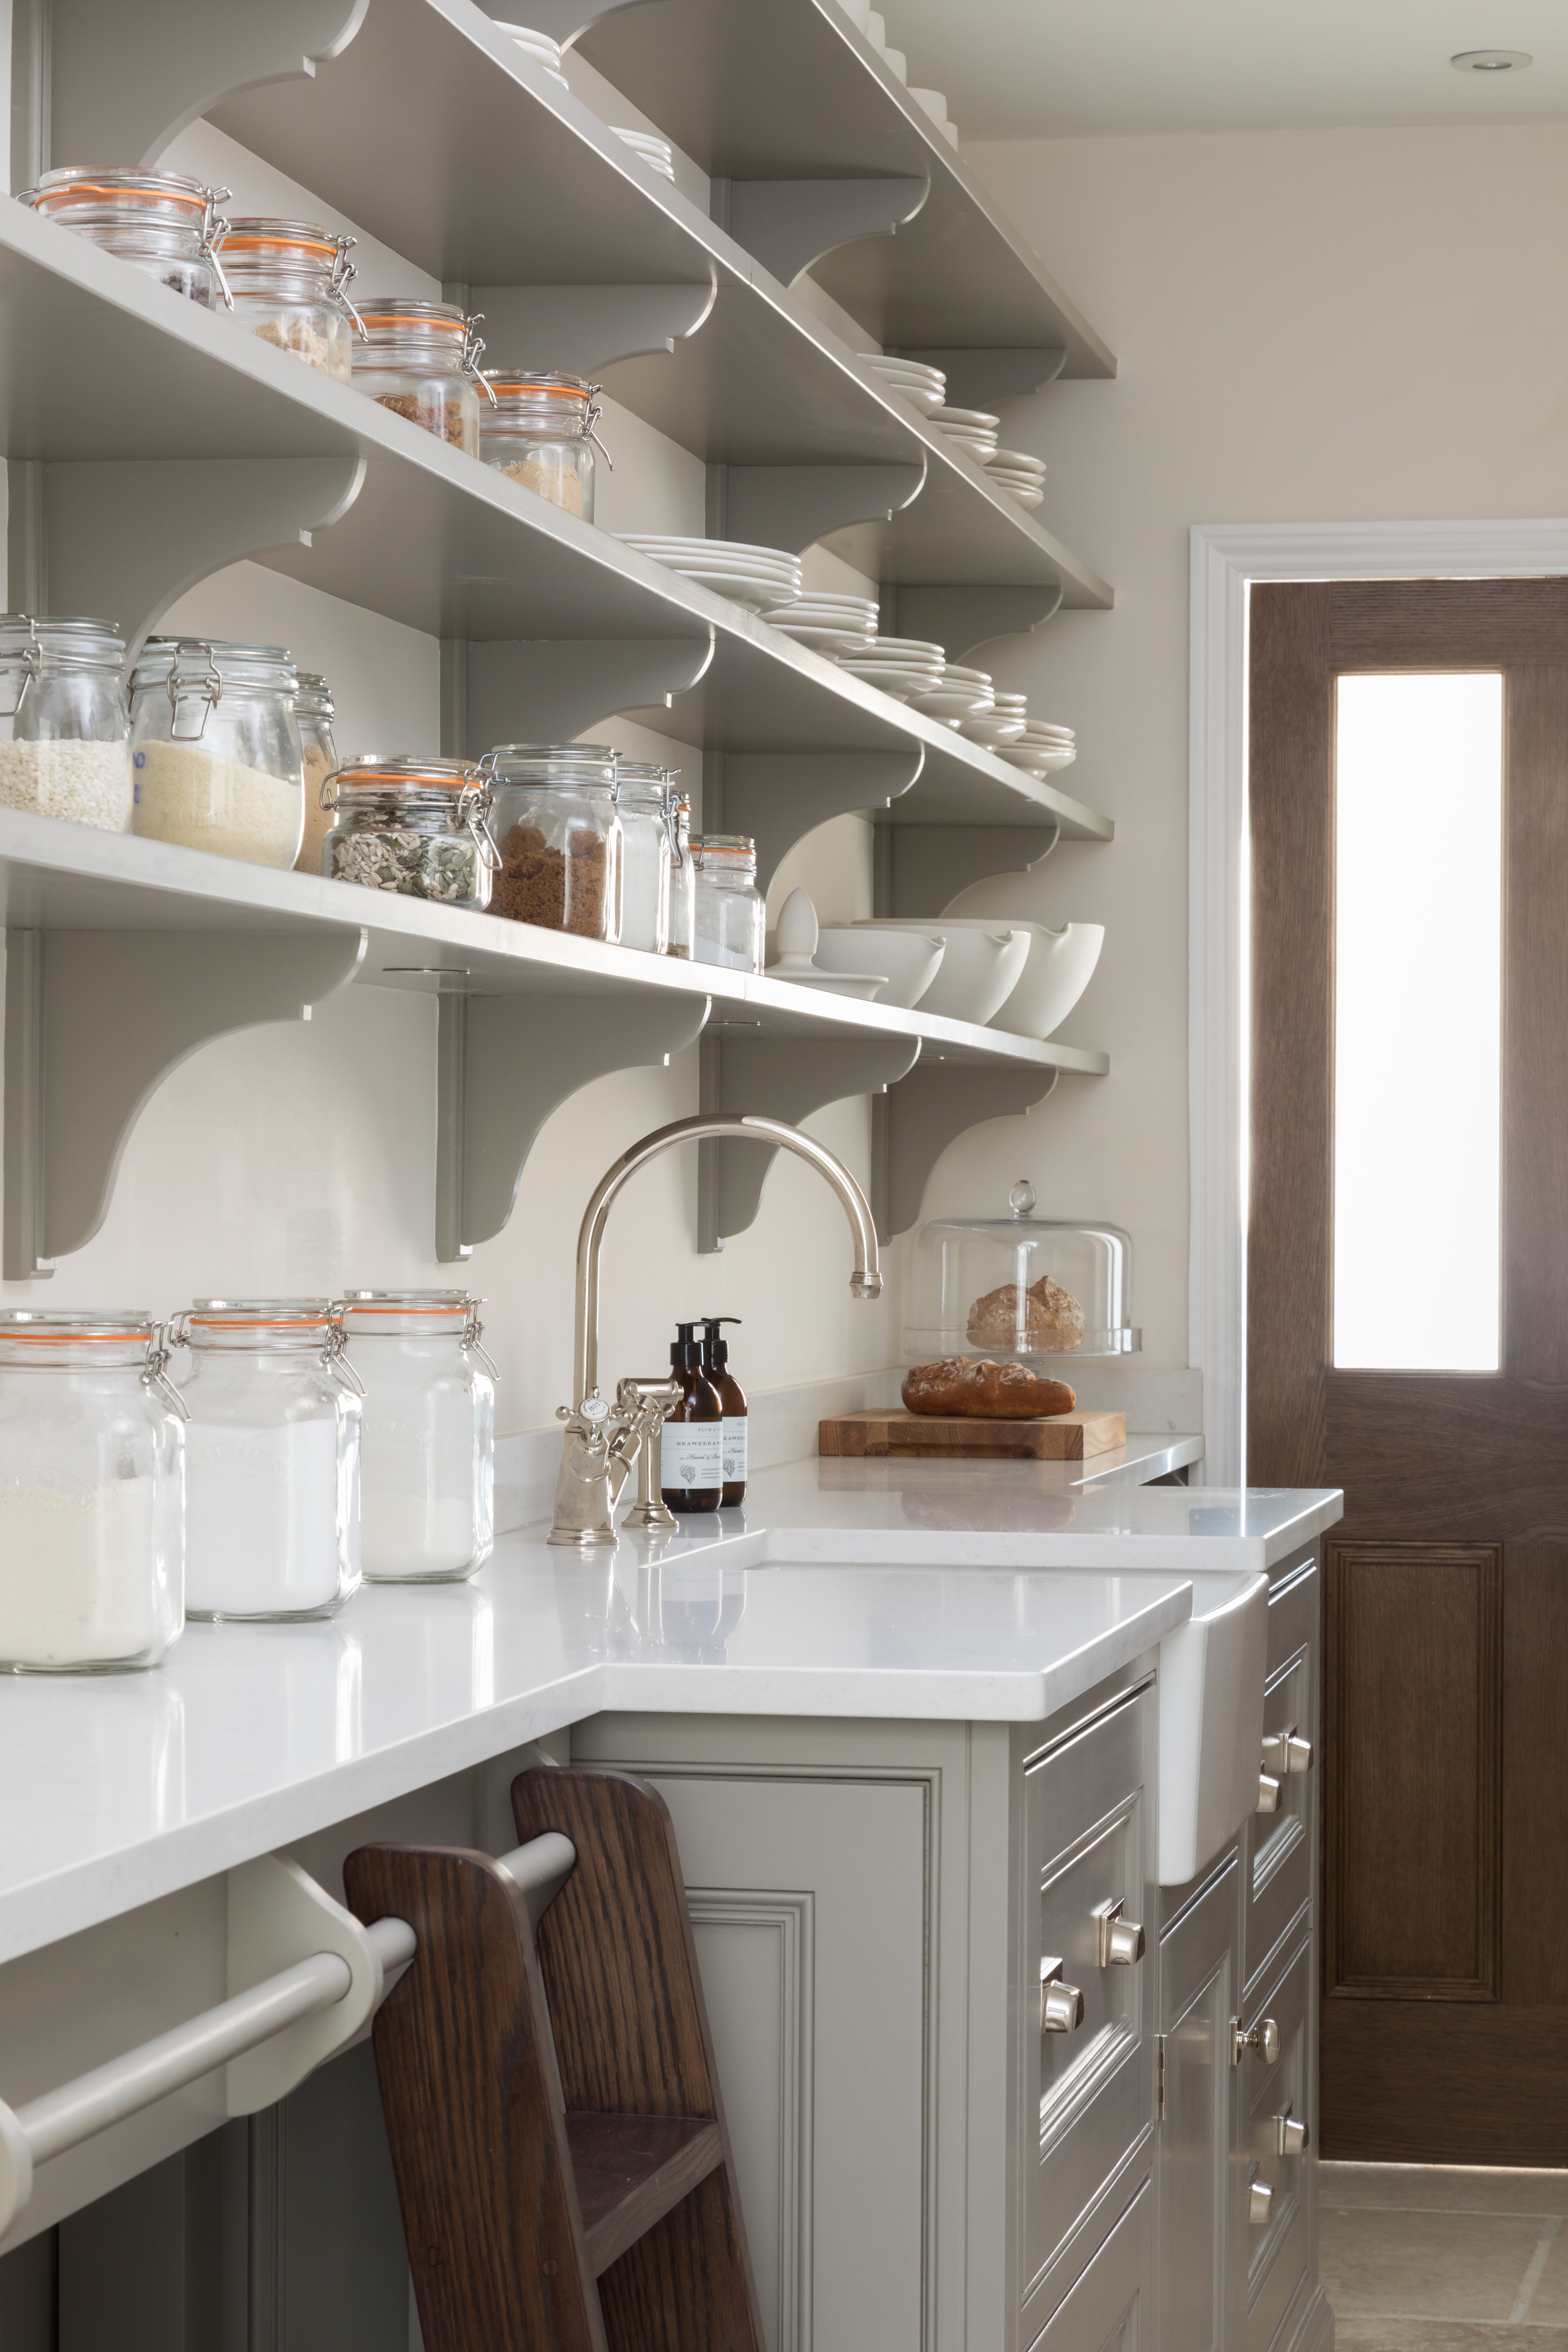 KWS Kitchen Trends HM Pantry